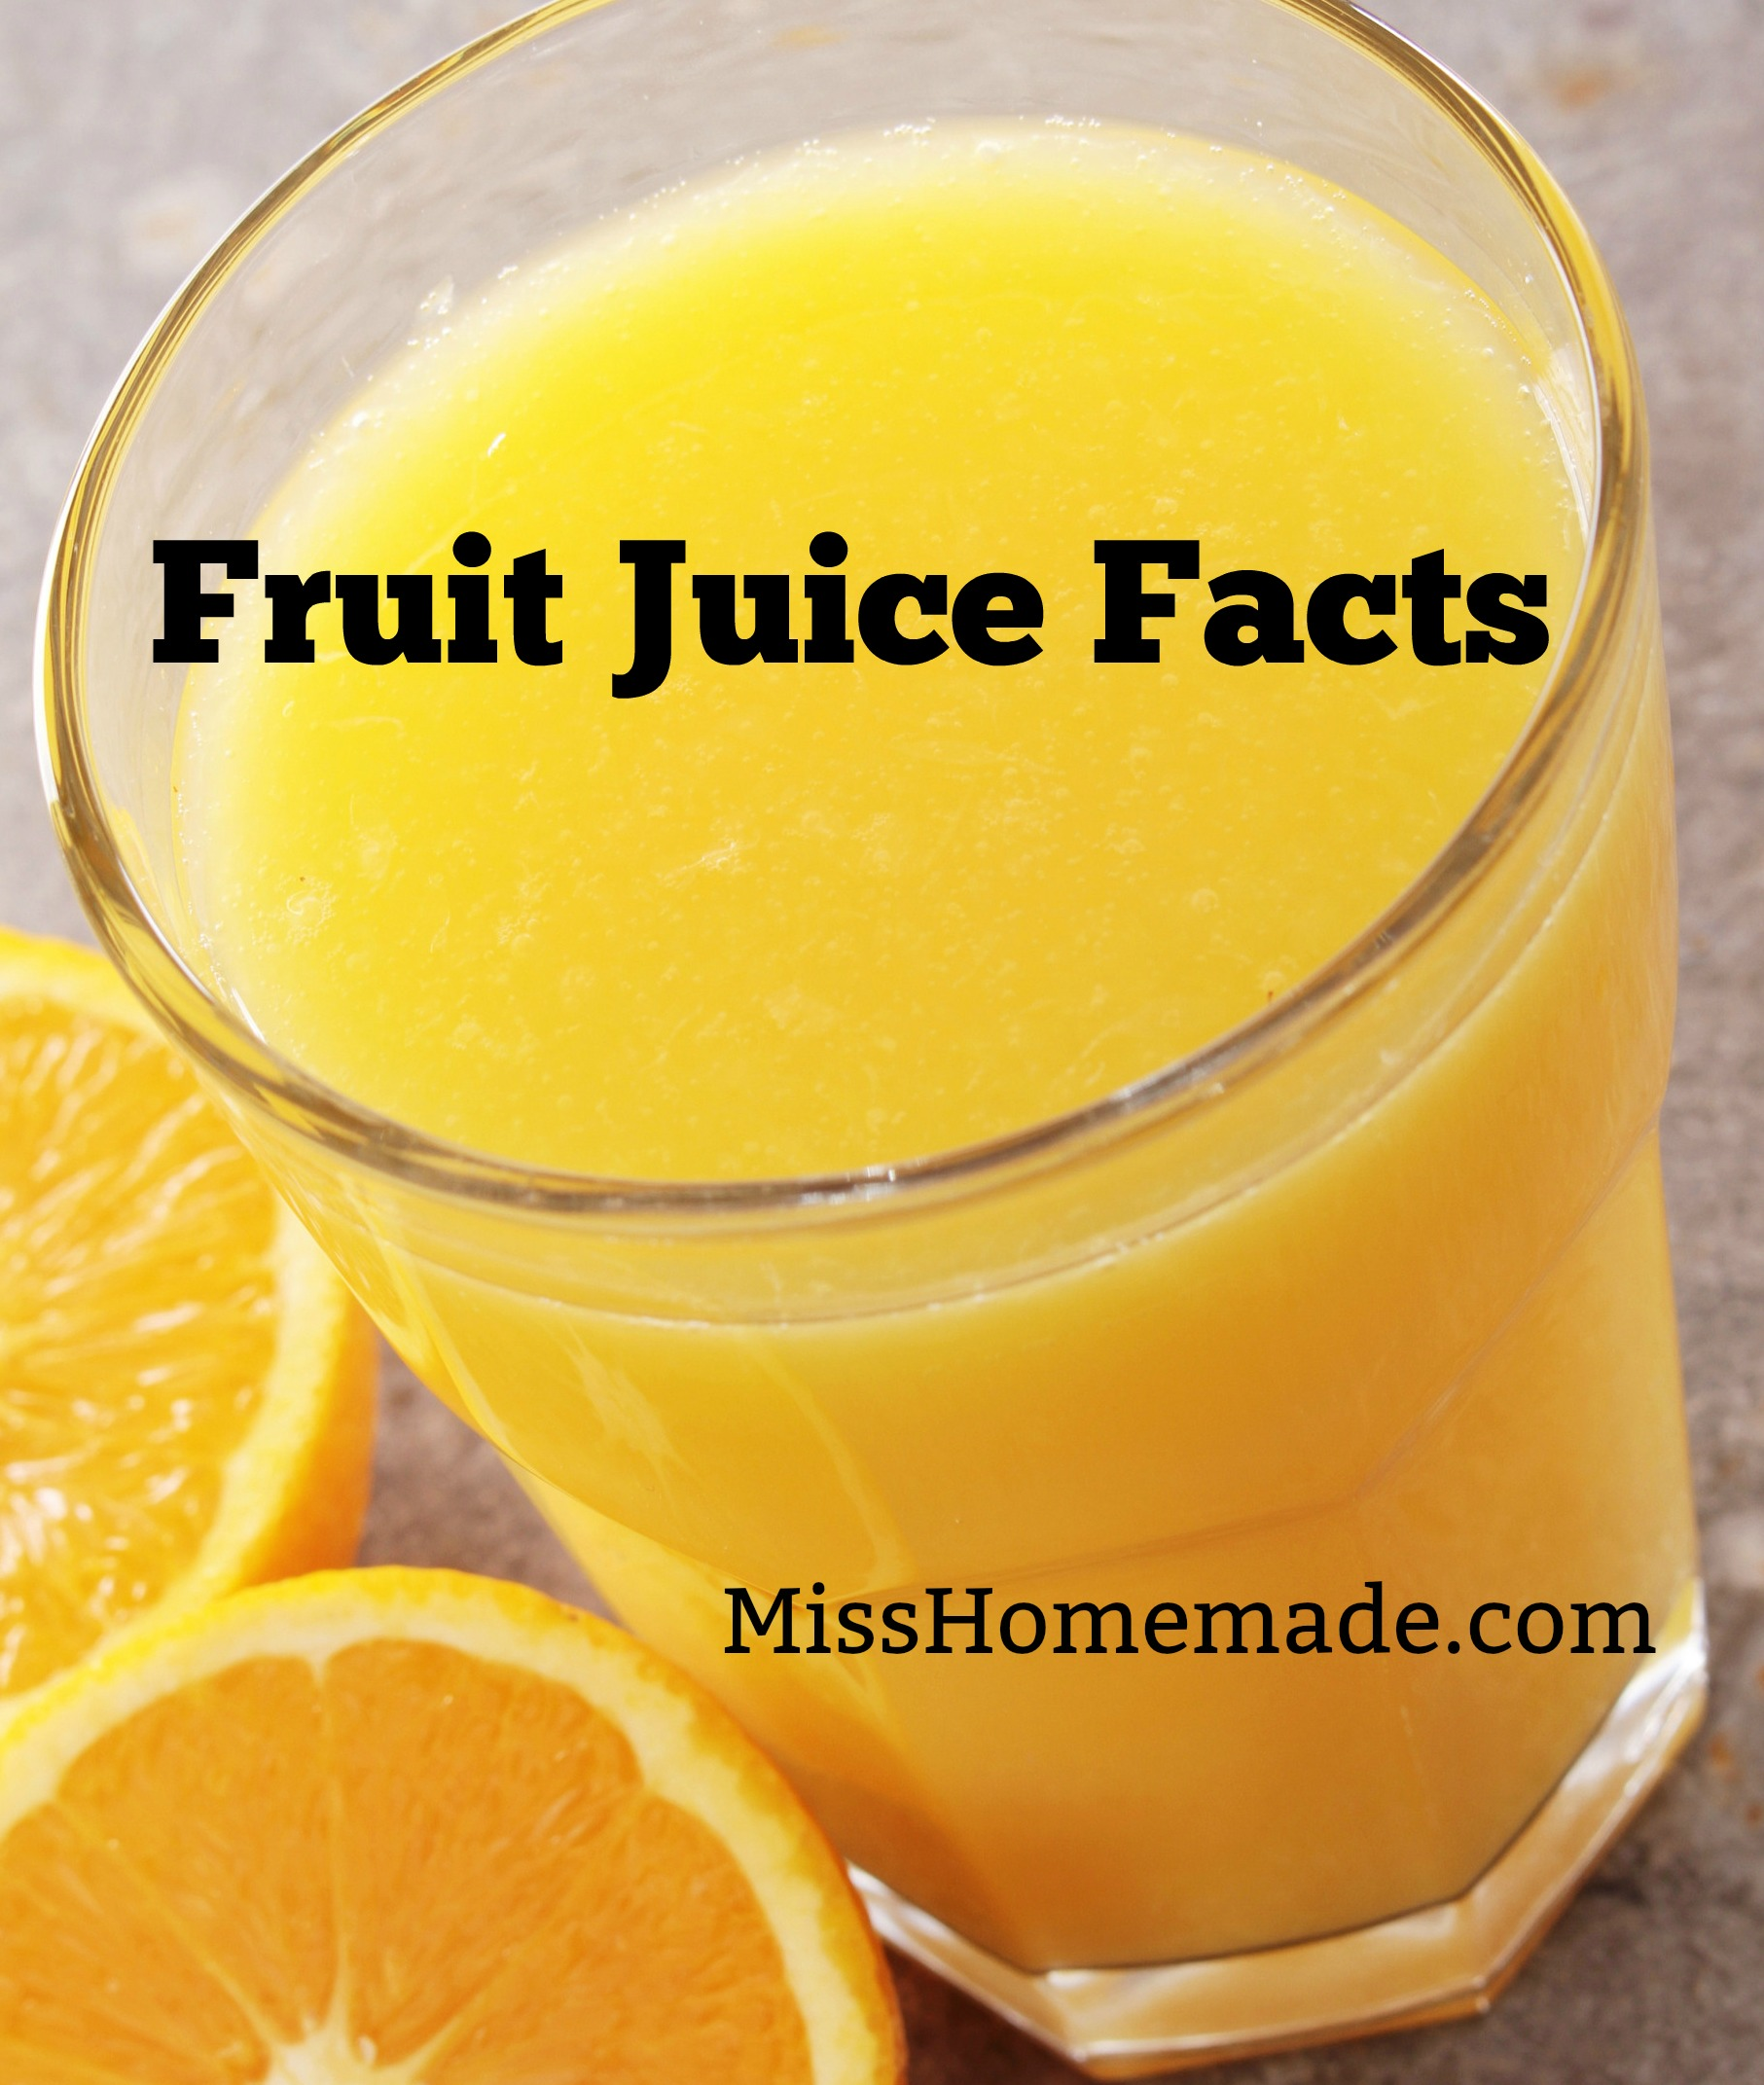 Fruit Juice Facts - things you probably never thought of (I didn't)